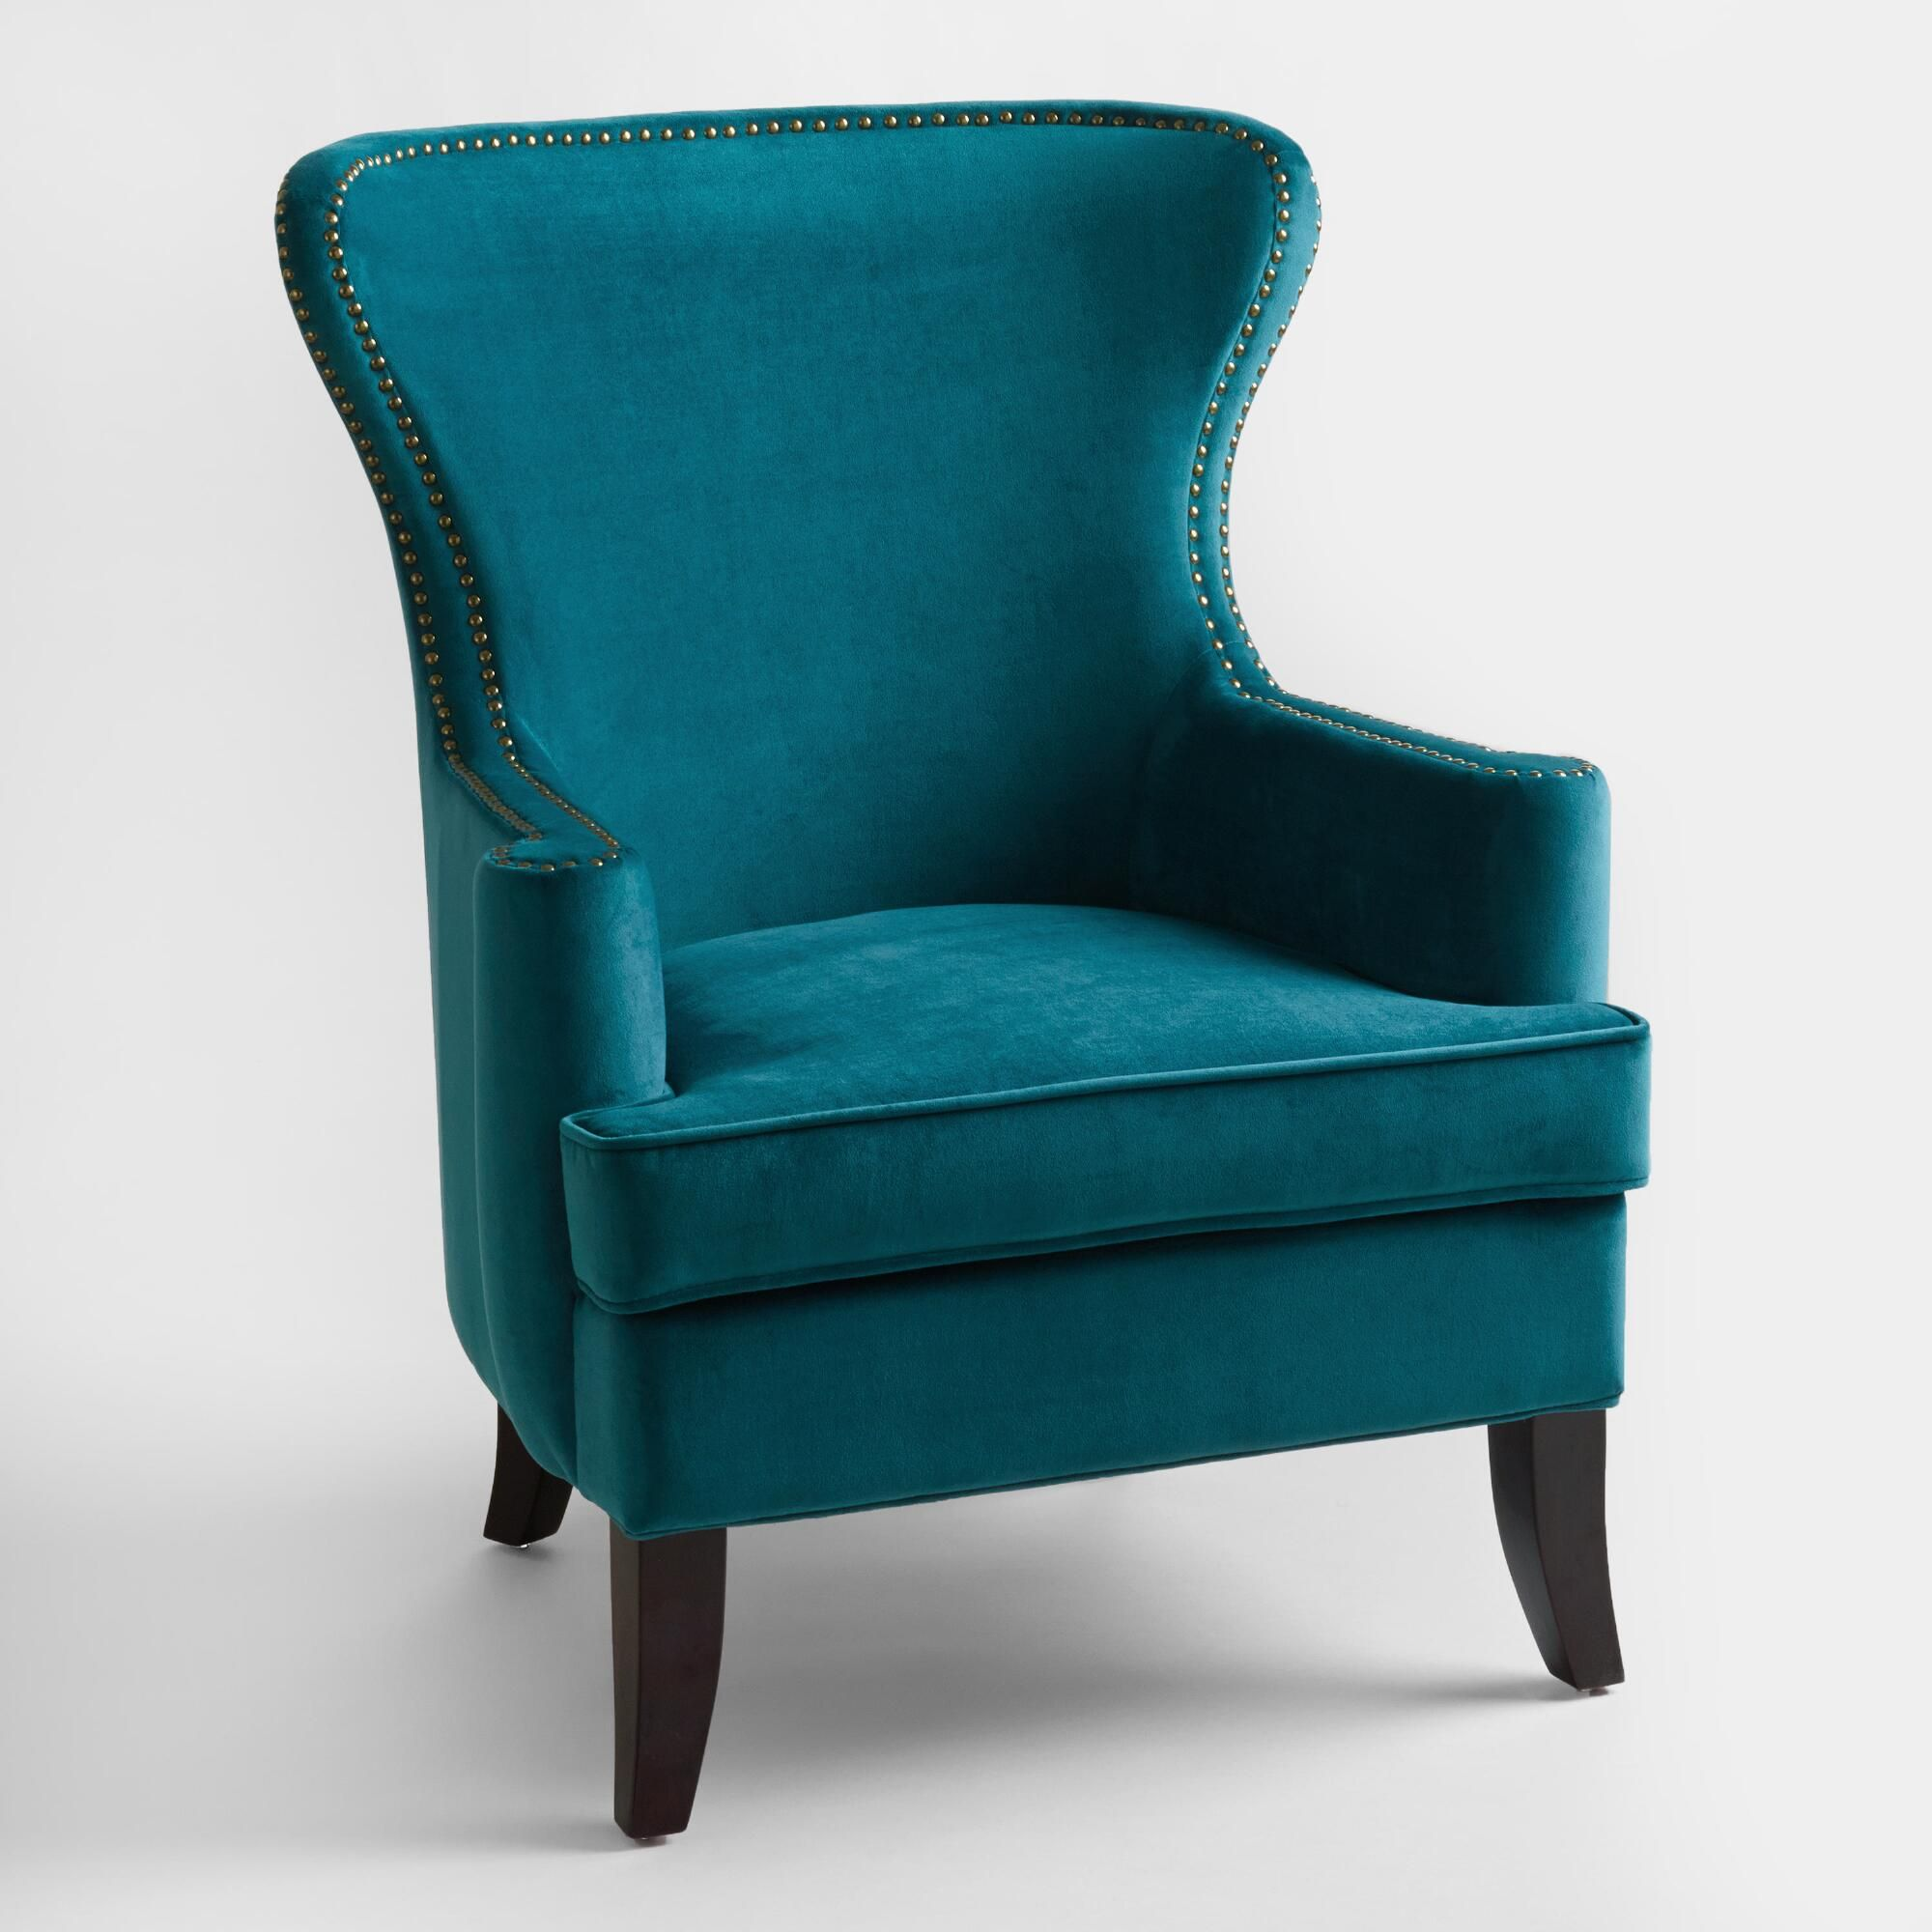 blue wingback chair slipcovers wheelchair or iipsrv fcgi 2 000 pixels furniture chairs teal armchair desk